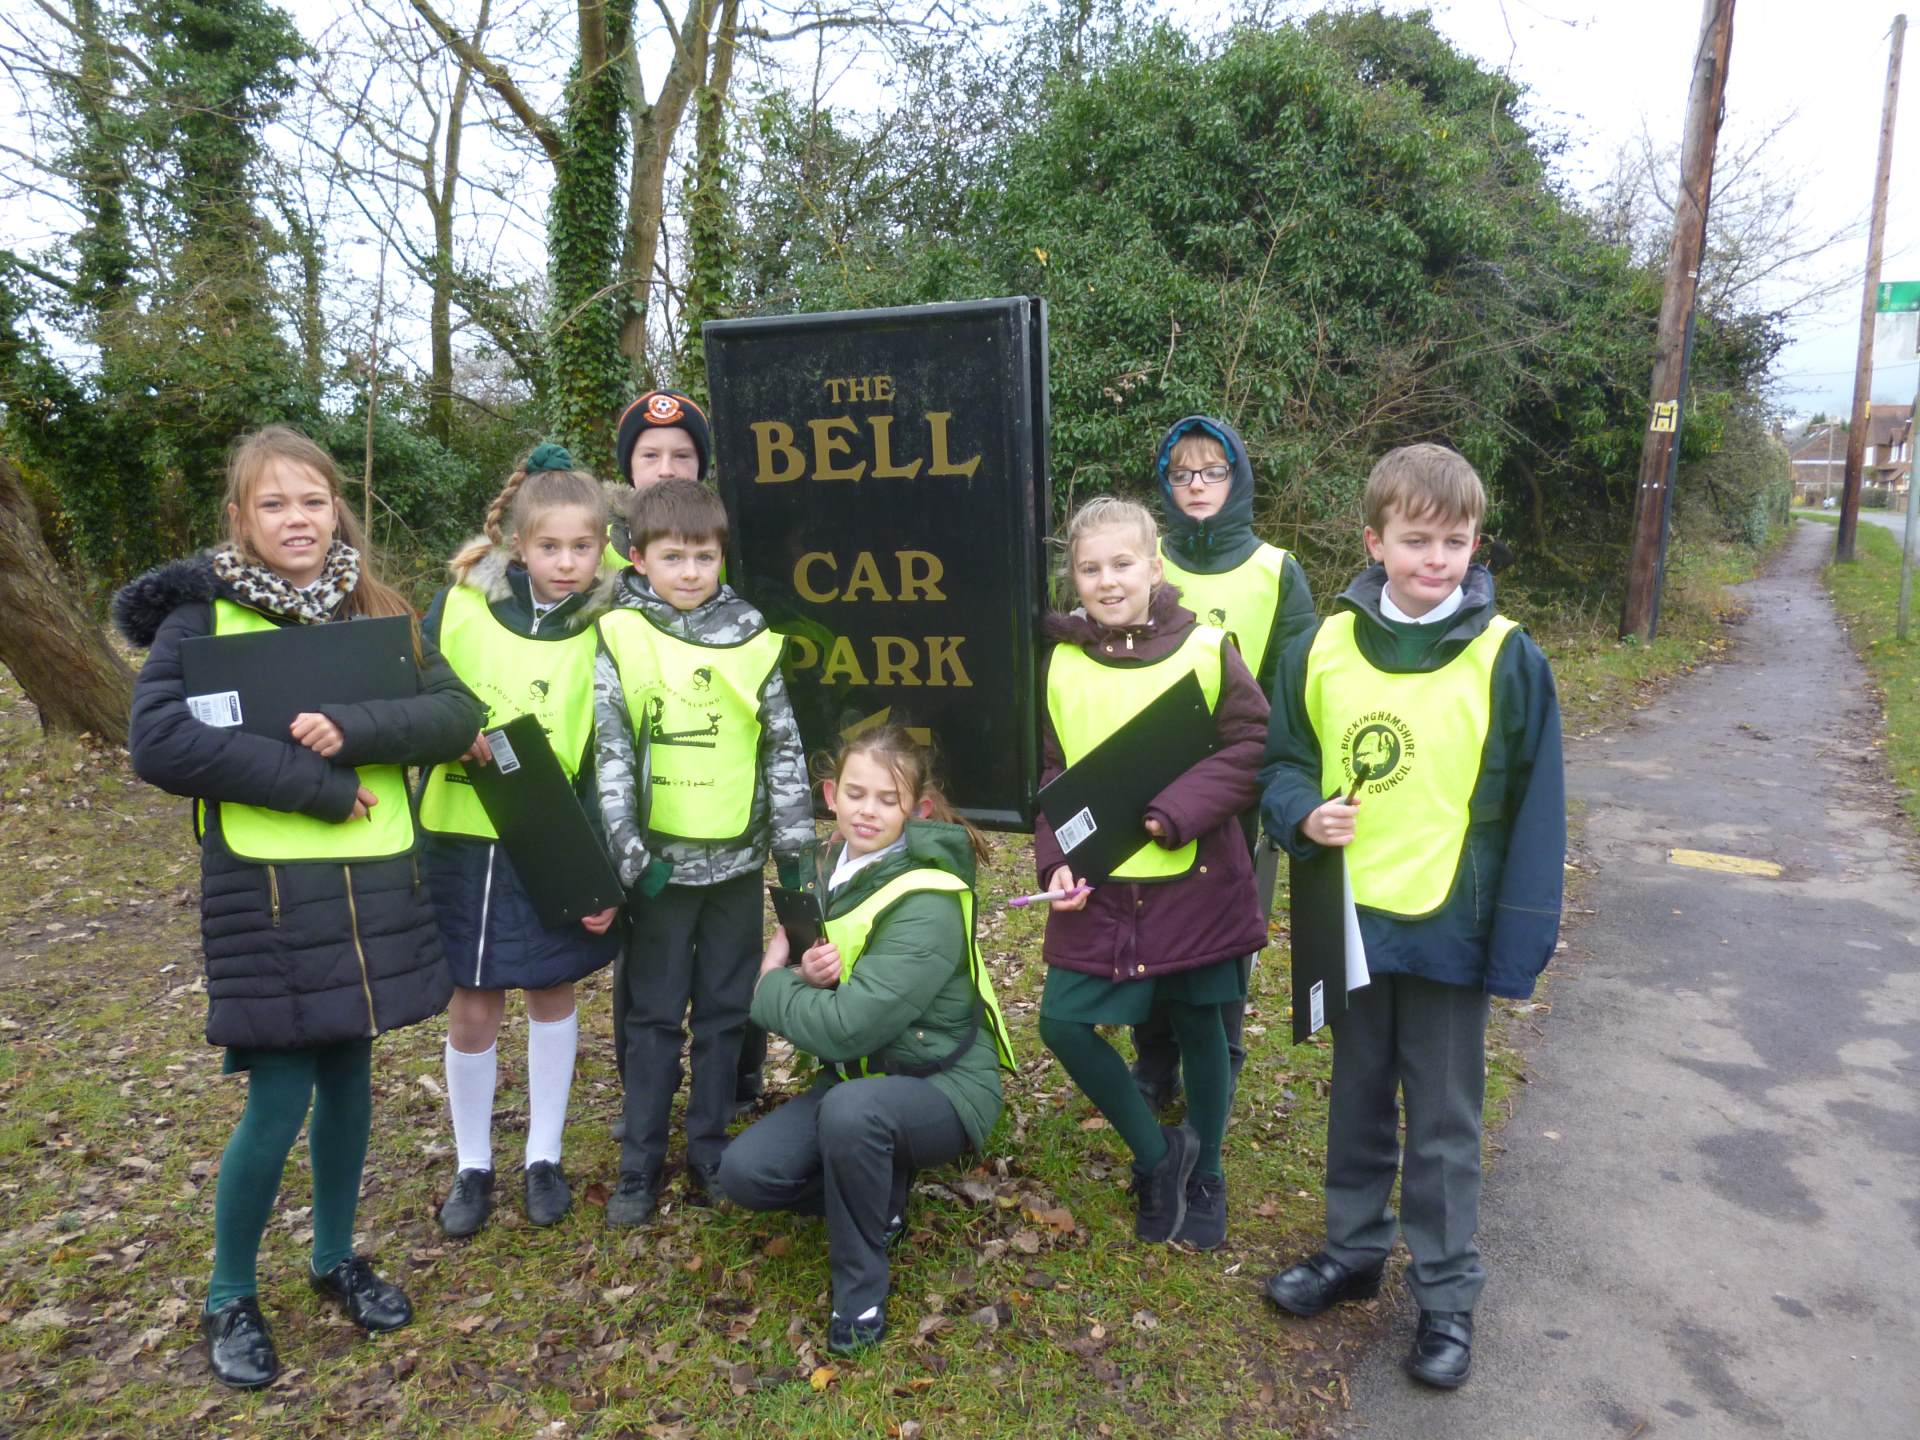 Some of our Junior Road Safety Officers auditing the walking route.